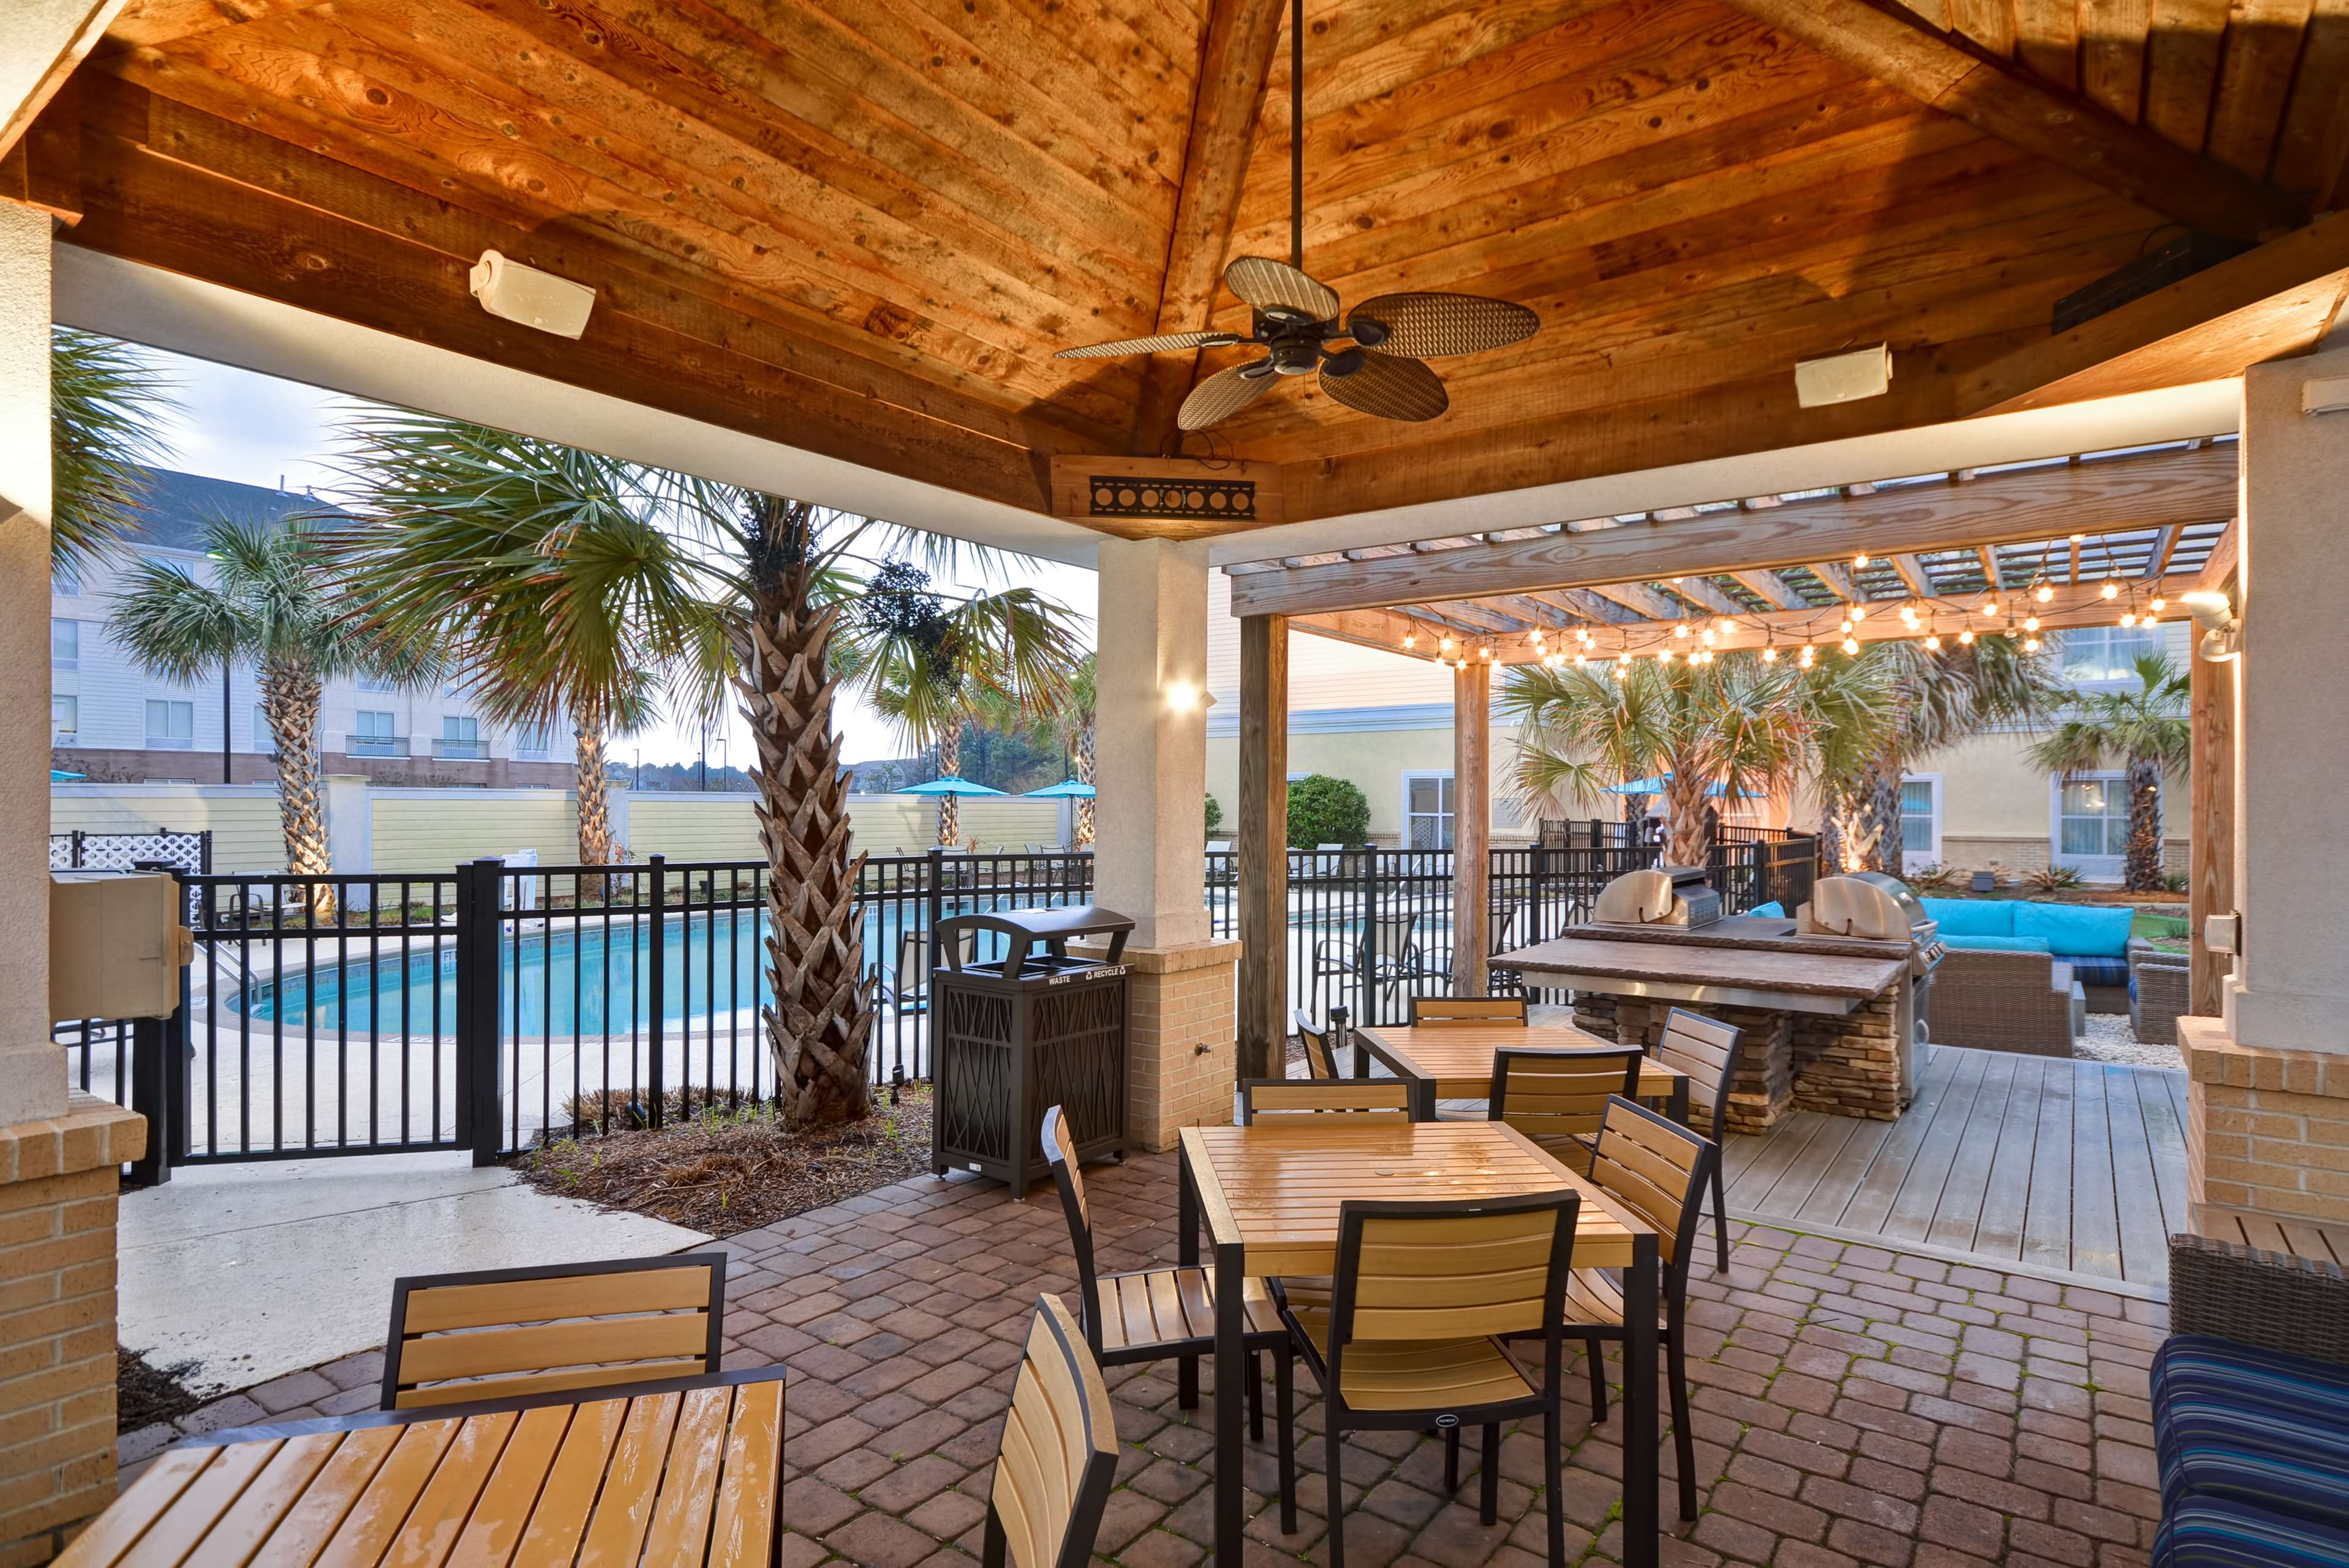 Homewood Suites by Hilton Wilmington/Mayfaire, NC image 7